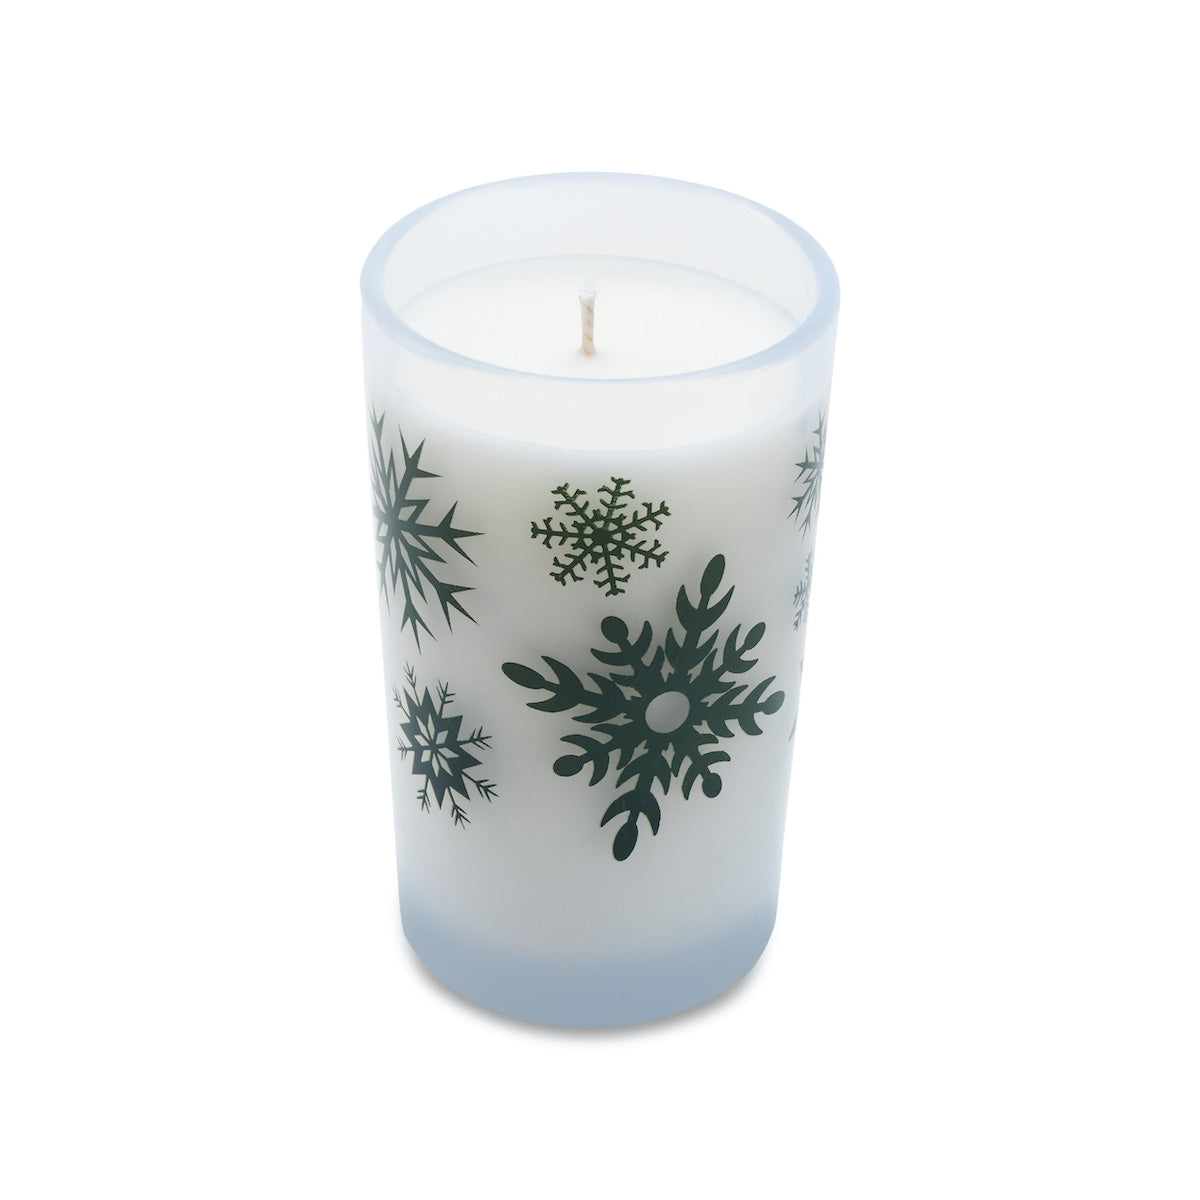 5.5oz Holiday Candle - Frosted White (Green Snowflakes)